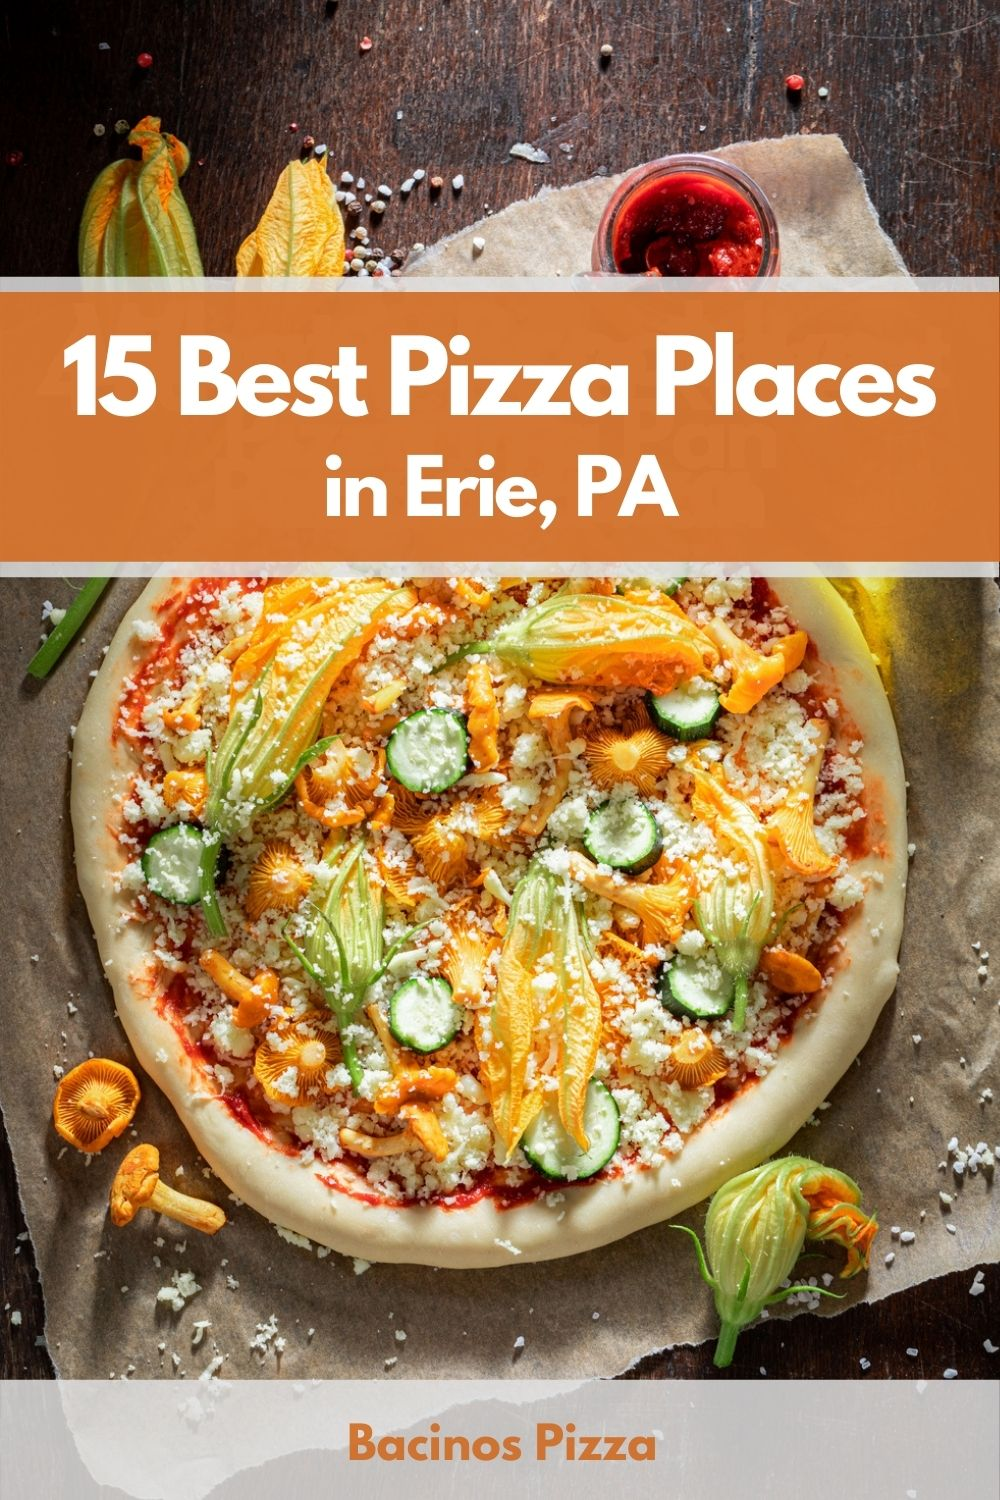 15 Best Pizza Places in Erie, PA pin